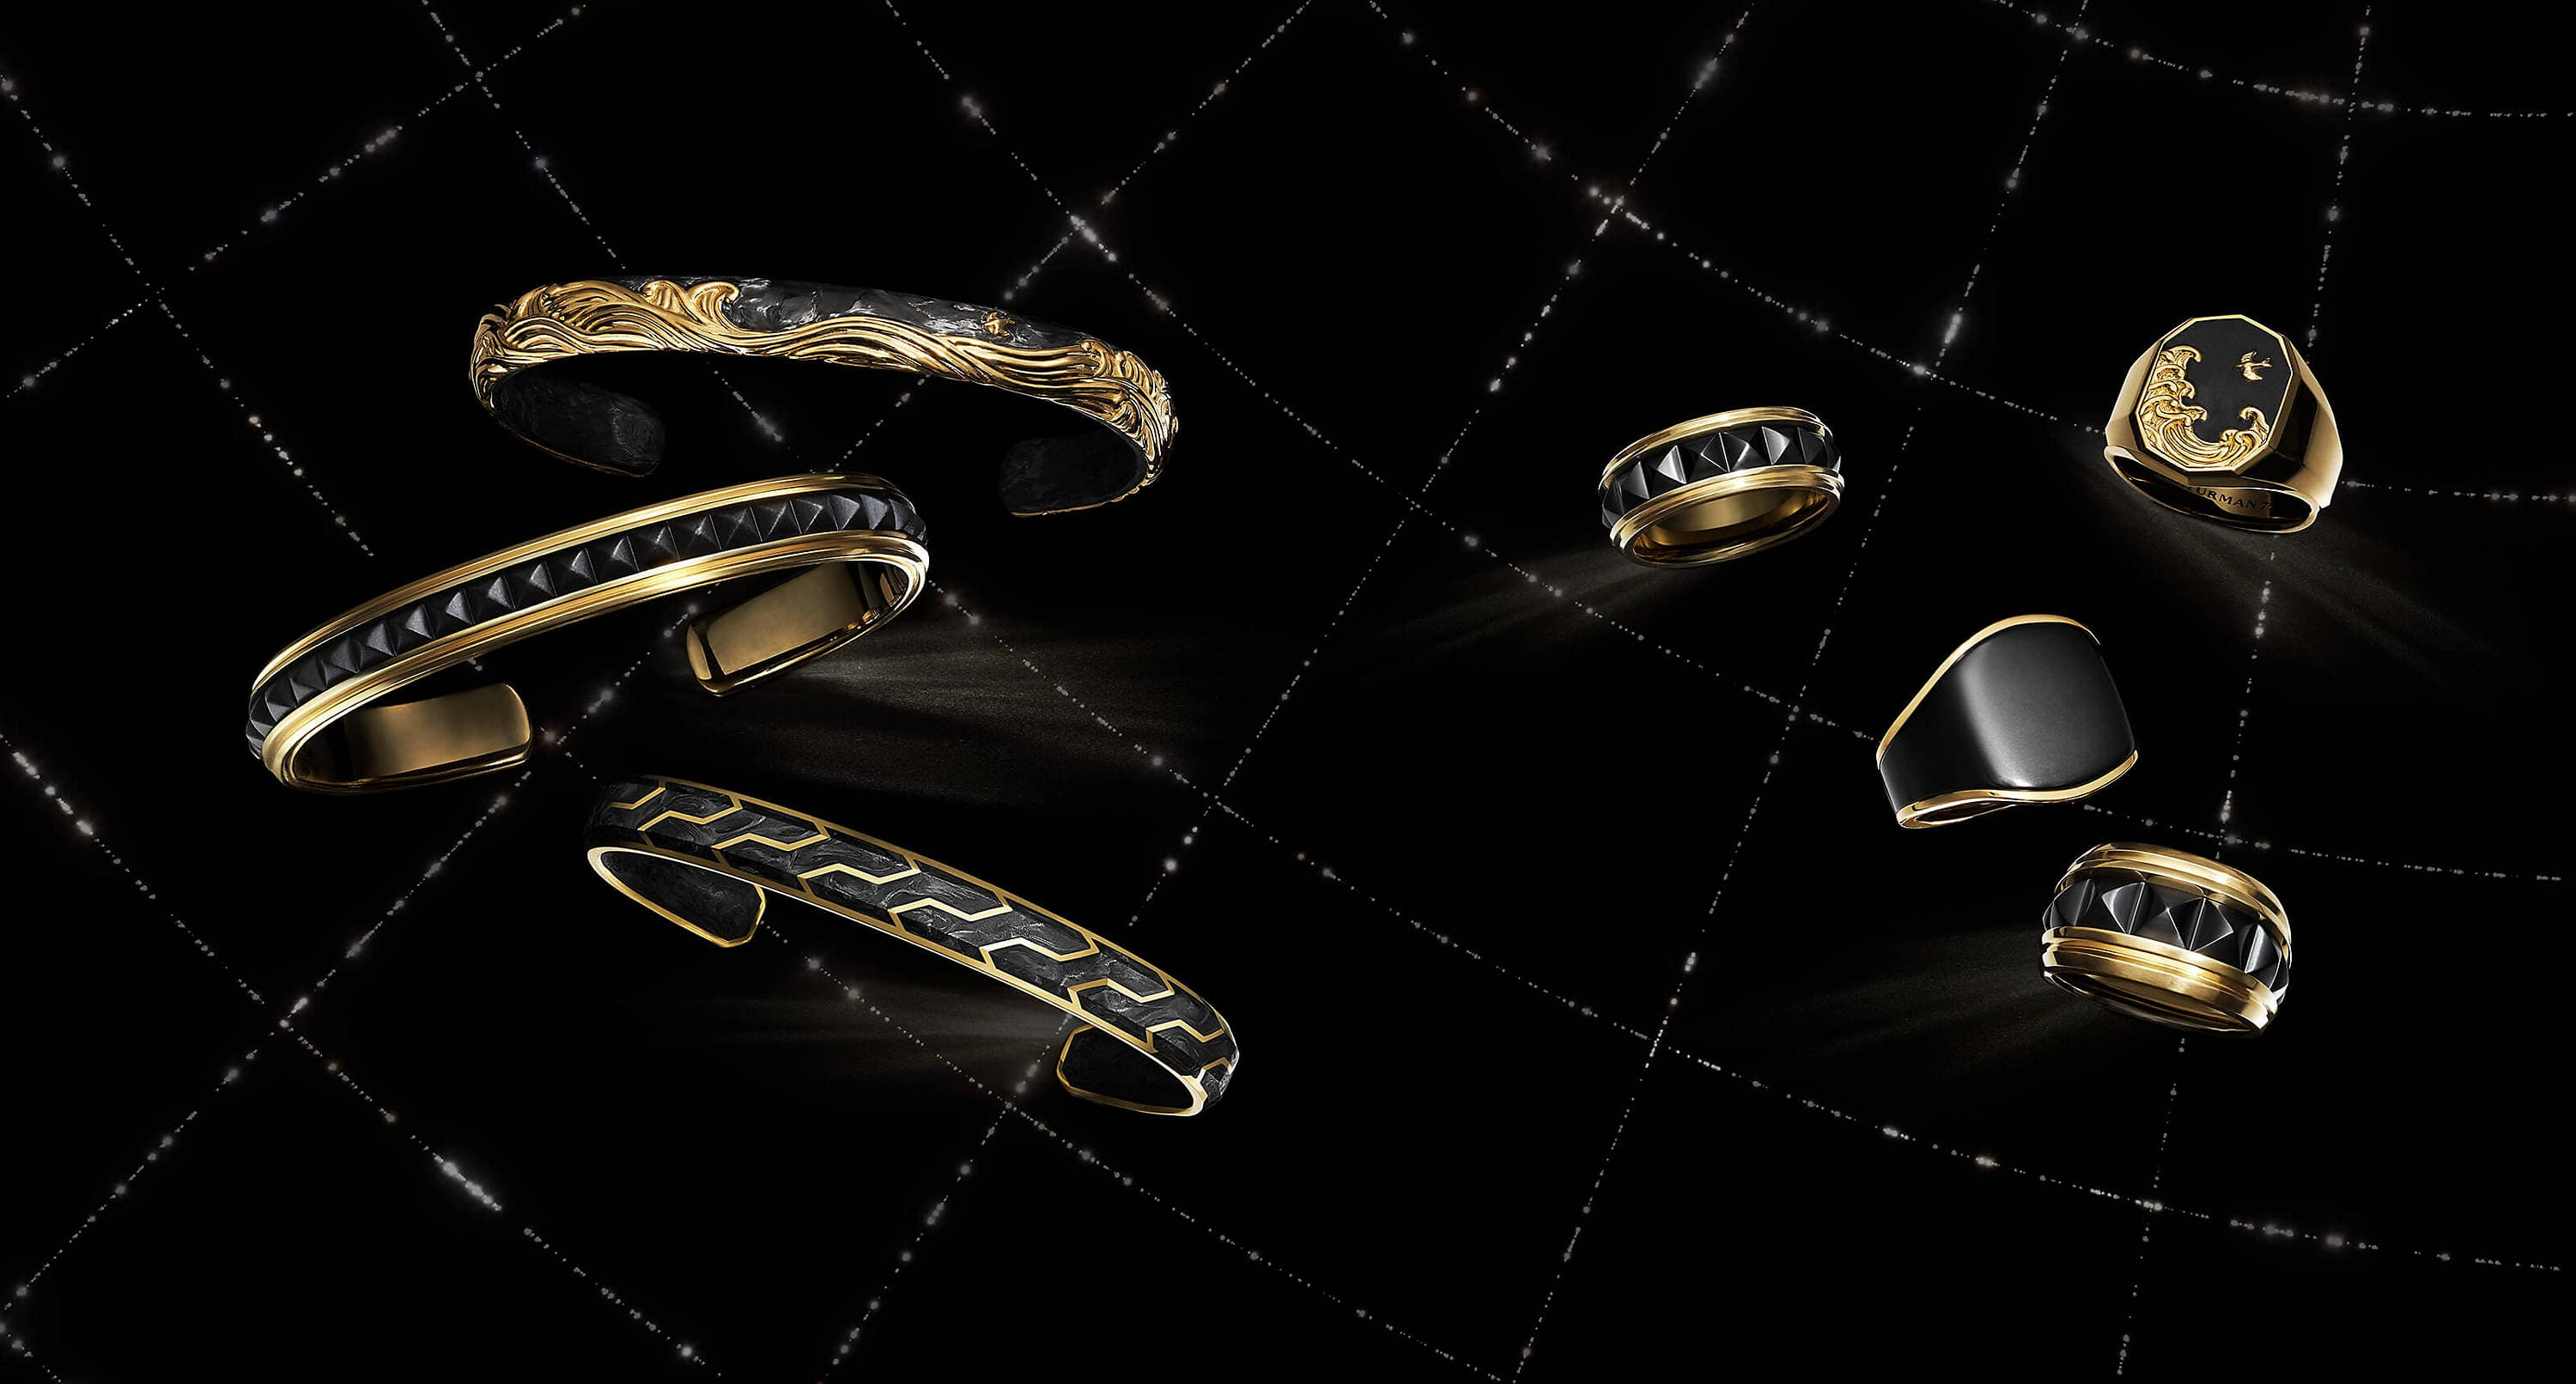 A color photo shows three David Yurman men's bracelets and four men's rings floating in a night sky with white latitude and longitude lines. The jewelry is crafted from 18K yellow gold with or without forged carbon or black titanium.